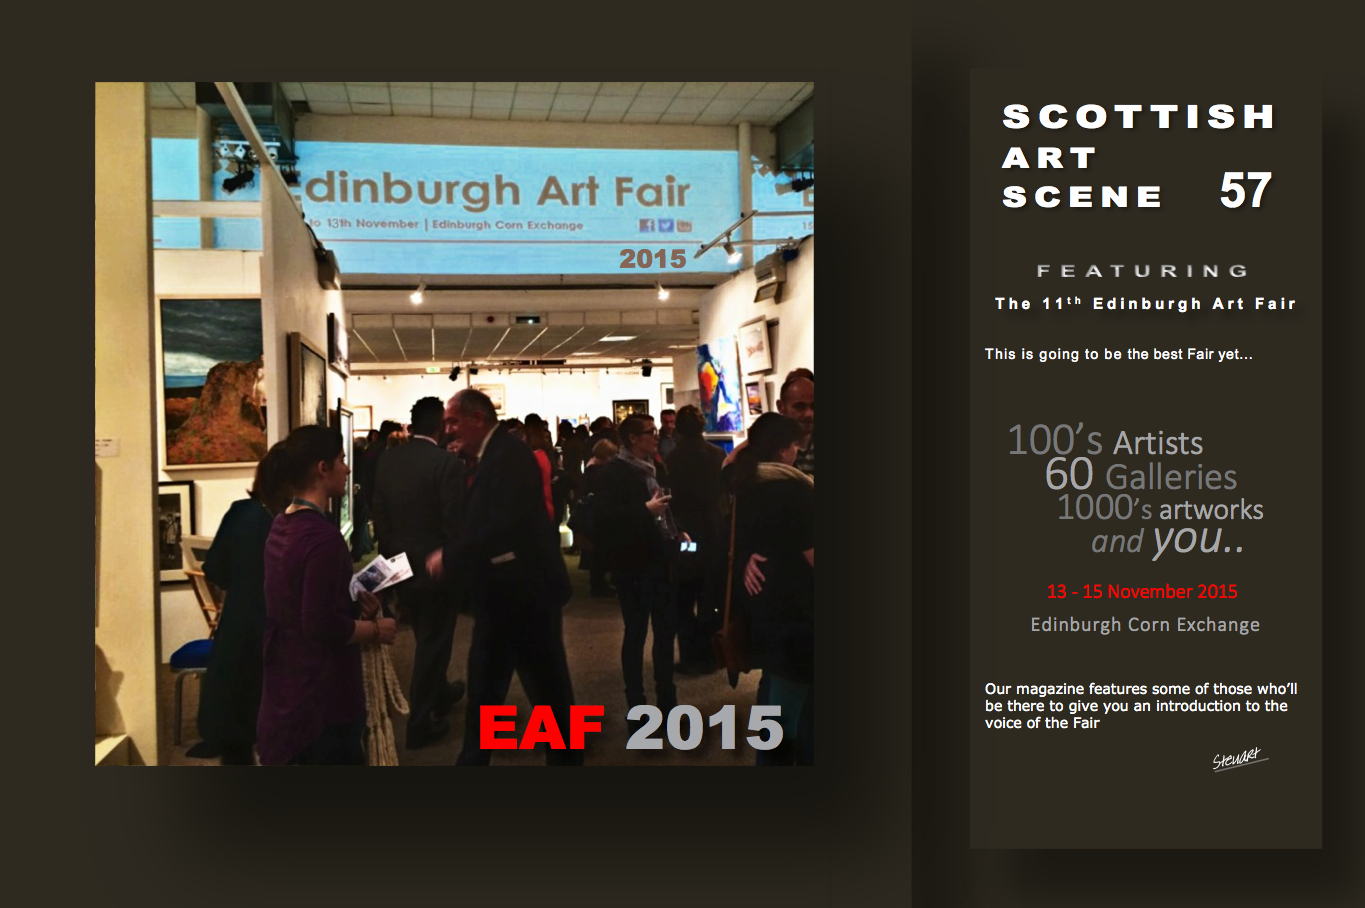 Scottish Art Scene: Edinburgh Art Fair